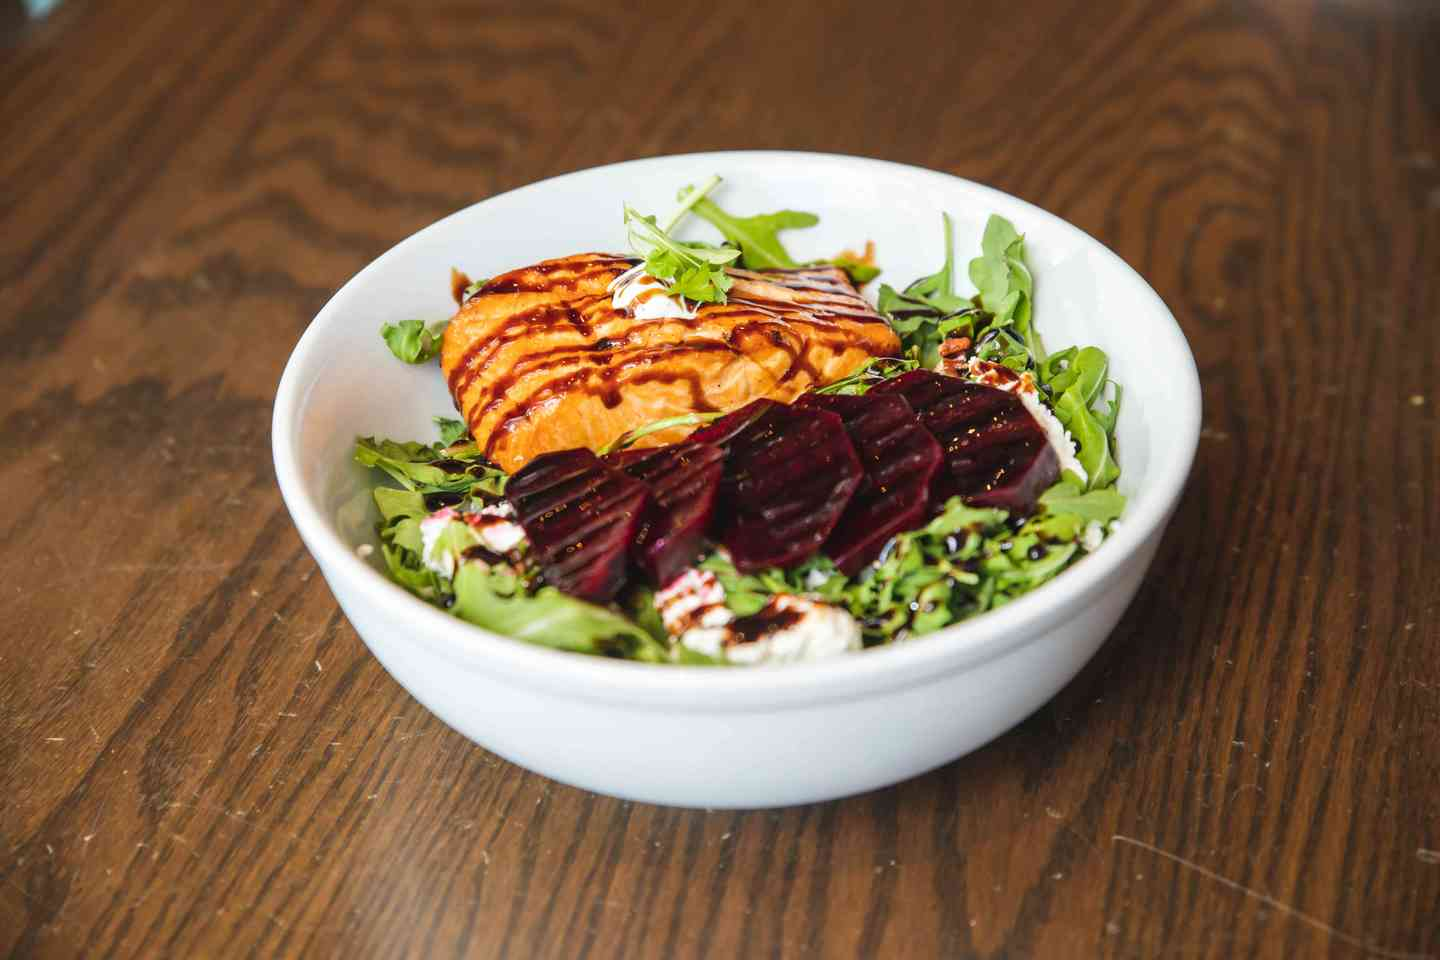 Roasted Beet Salad with Grilled Salmon or Crab Cakes